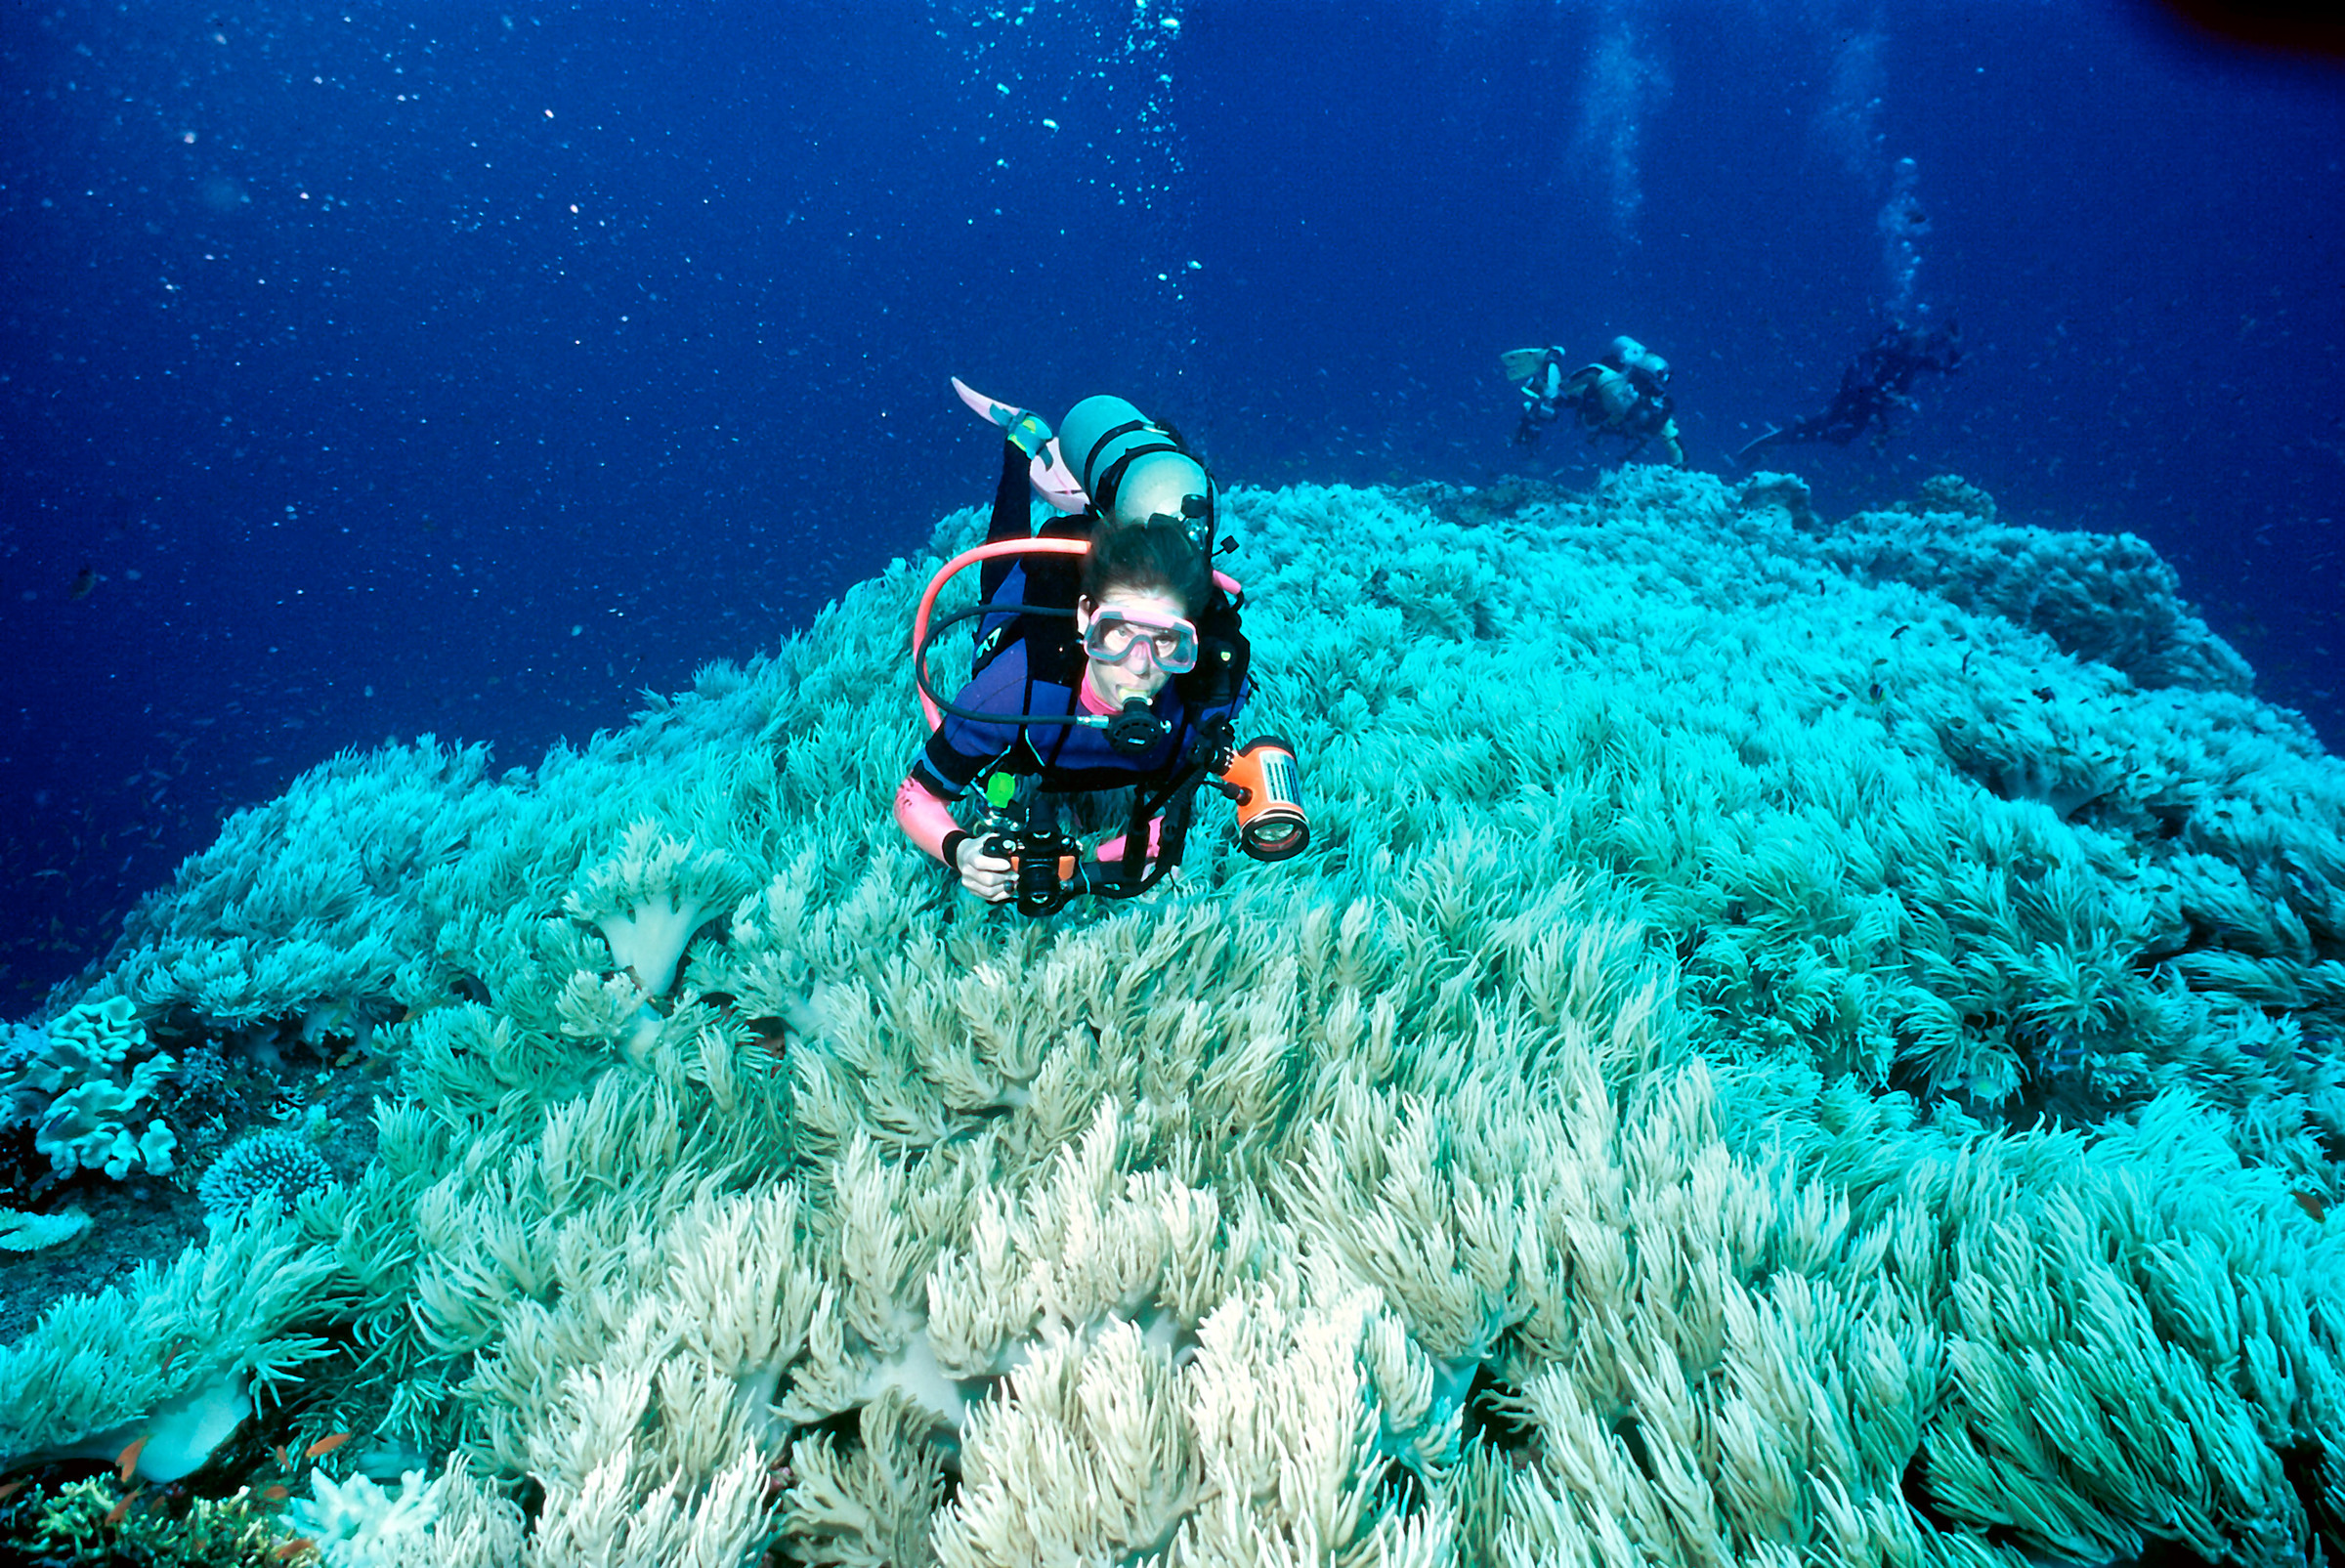 anthropogenic effects on coral reefs essay Coral reefs, with their millions of species, have changed profoundly because of the effects of people, and will continue to do so for the foreseeable future.